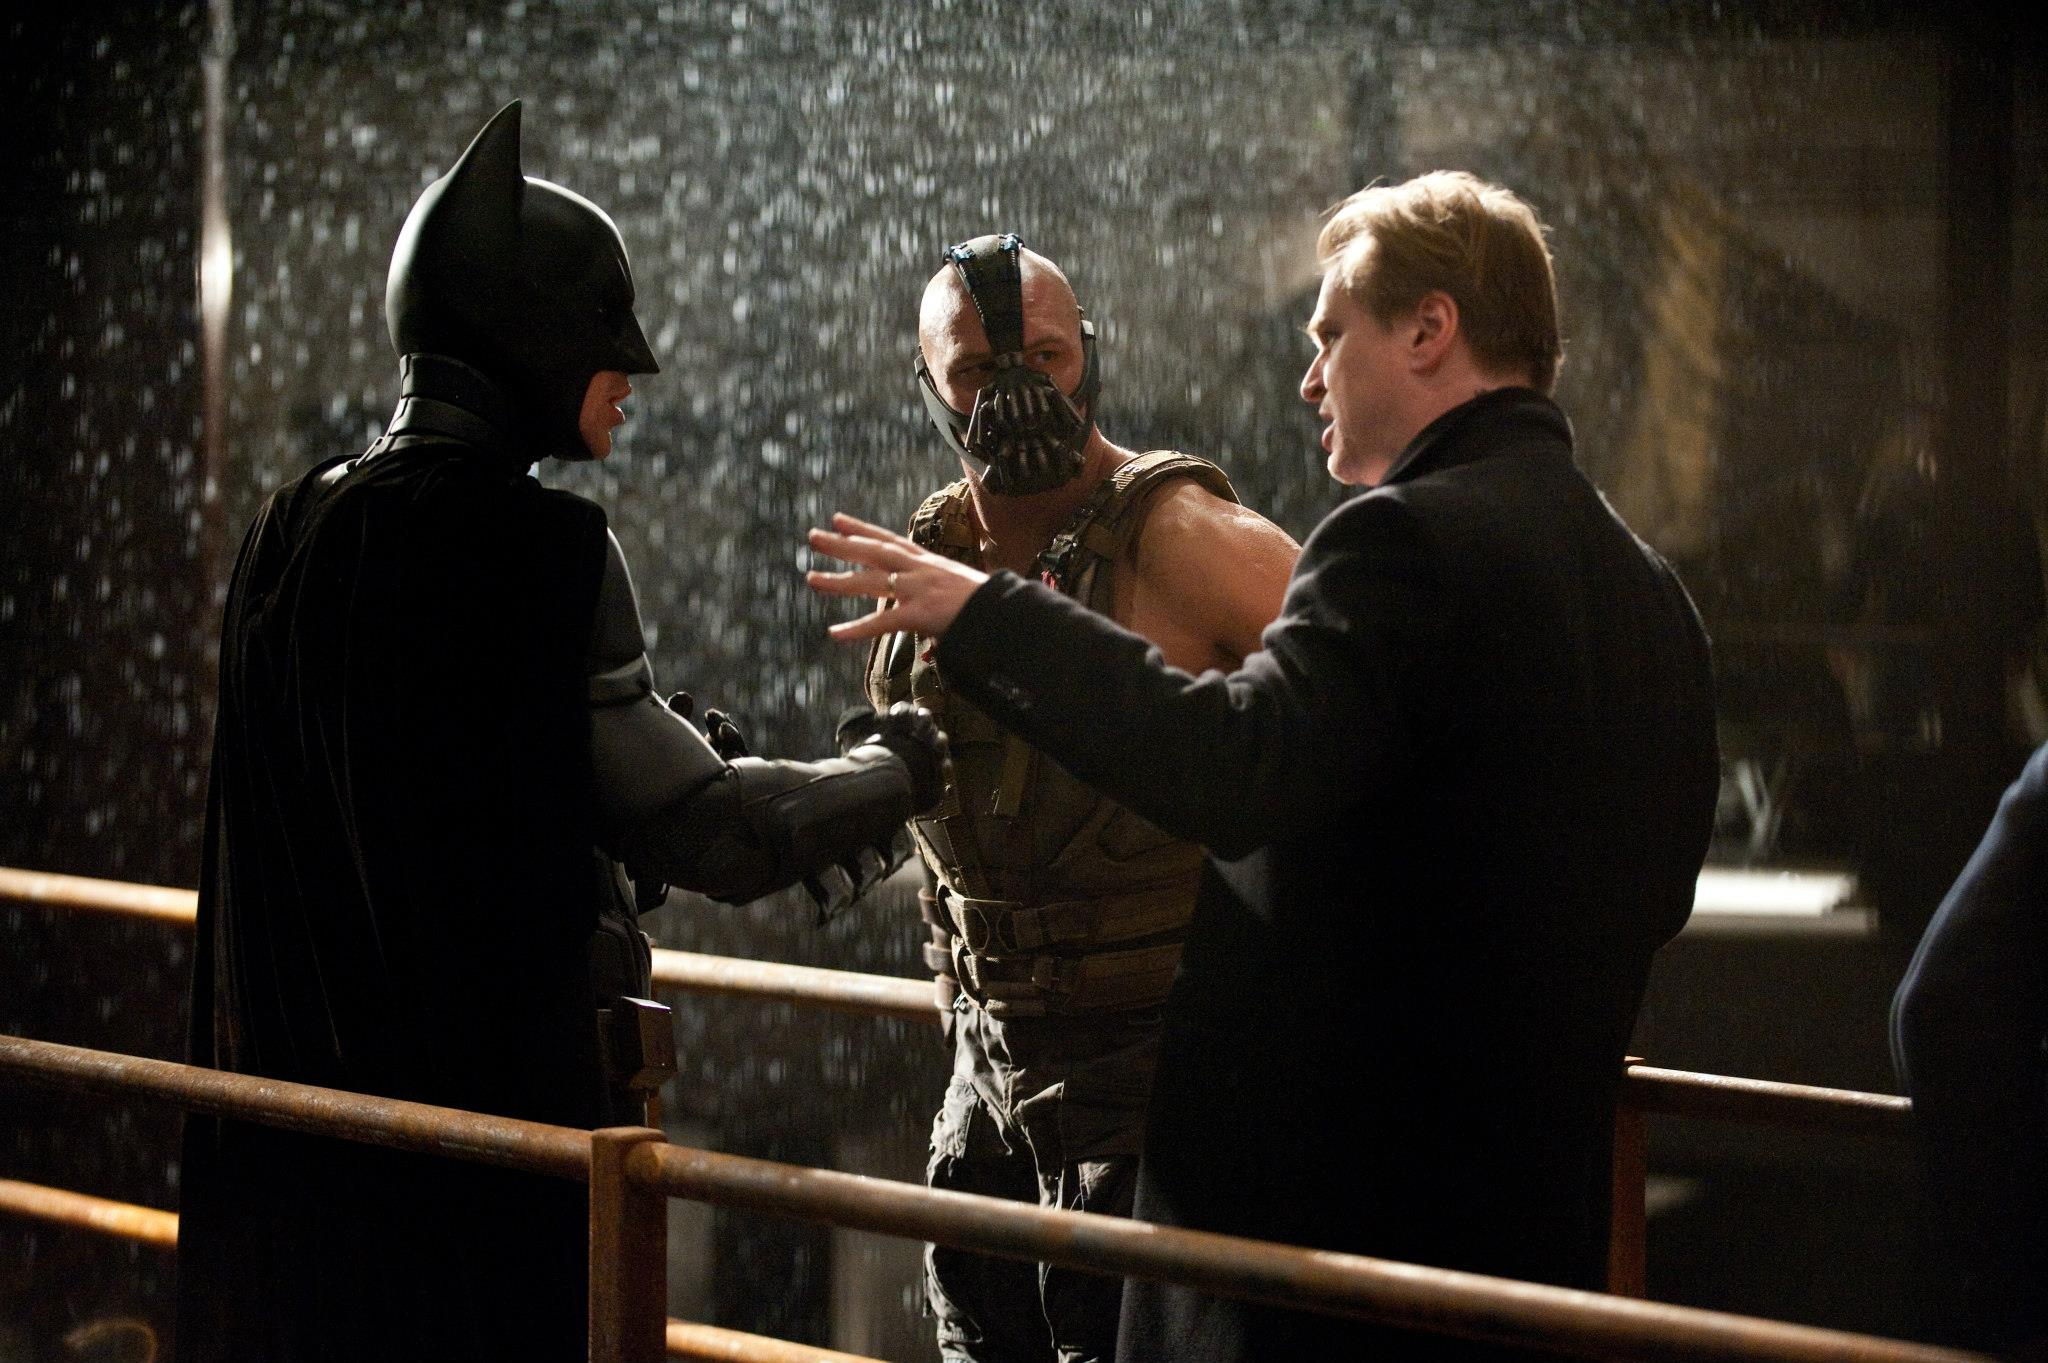 a short review of the dark knight rises a film by christopher nolan The dark knight was the second of the christopher nolan batman trilogy (batman begins/dark knight/dark knight rises) - this review will be.